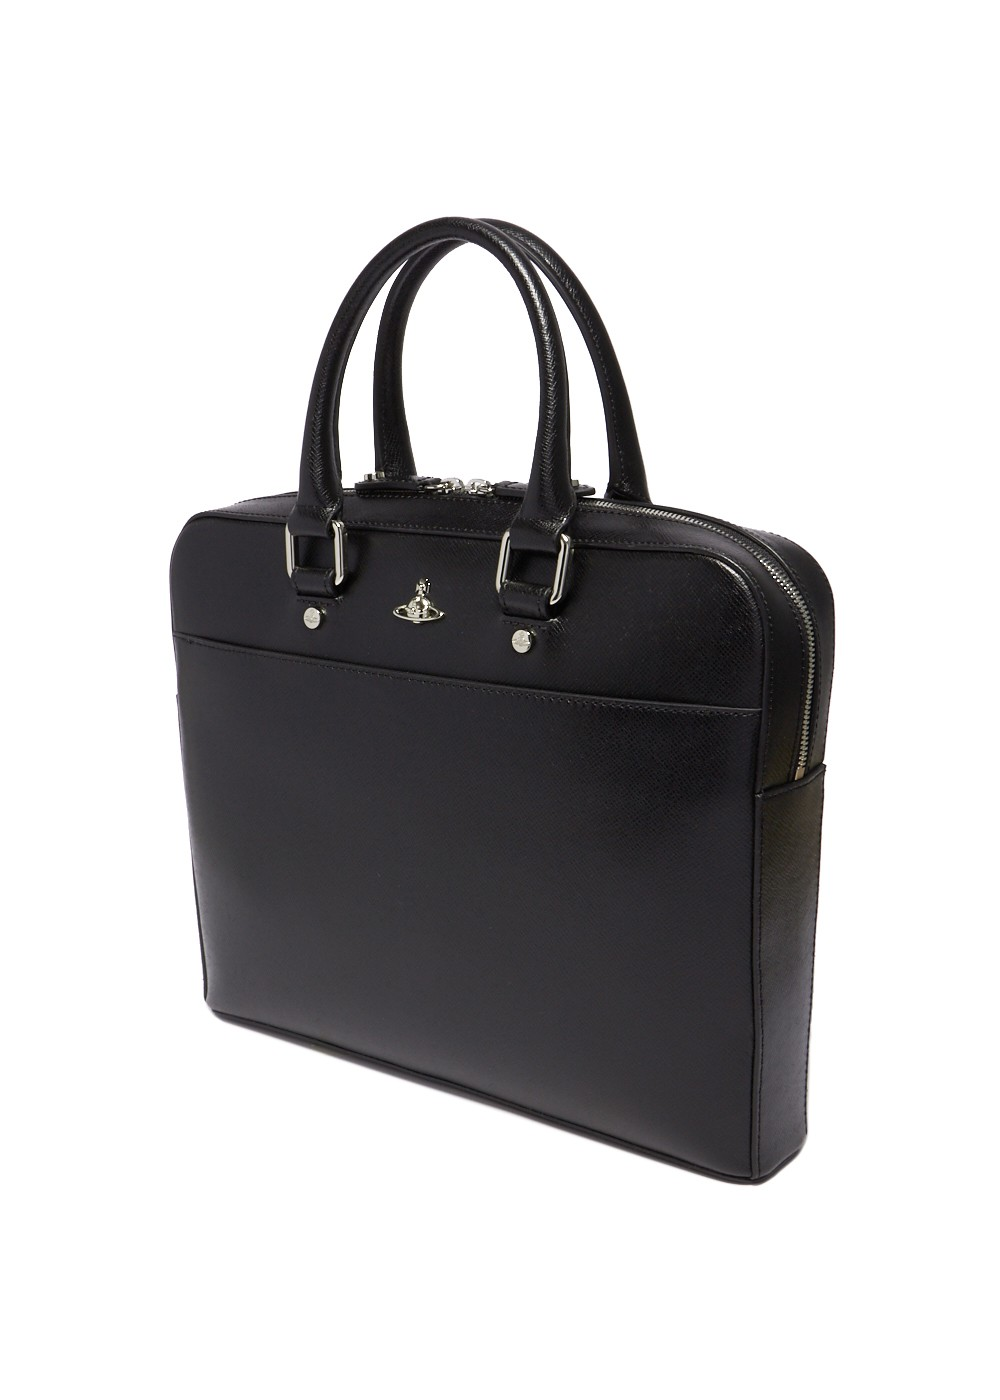 【最大61%OFF】【Price Down】KENT SLIM DOCUMENT CASE|BLACK|ハンドバッグ|Vivienne Westwood